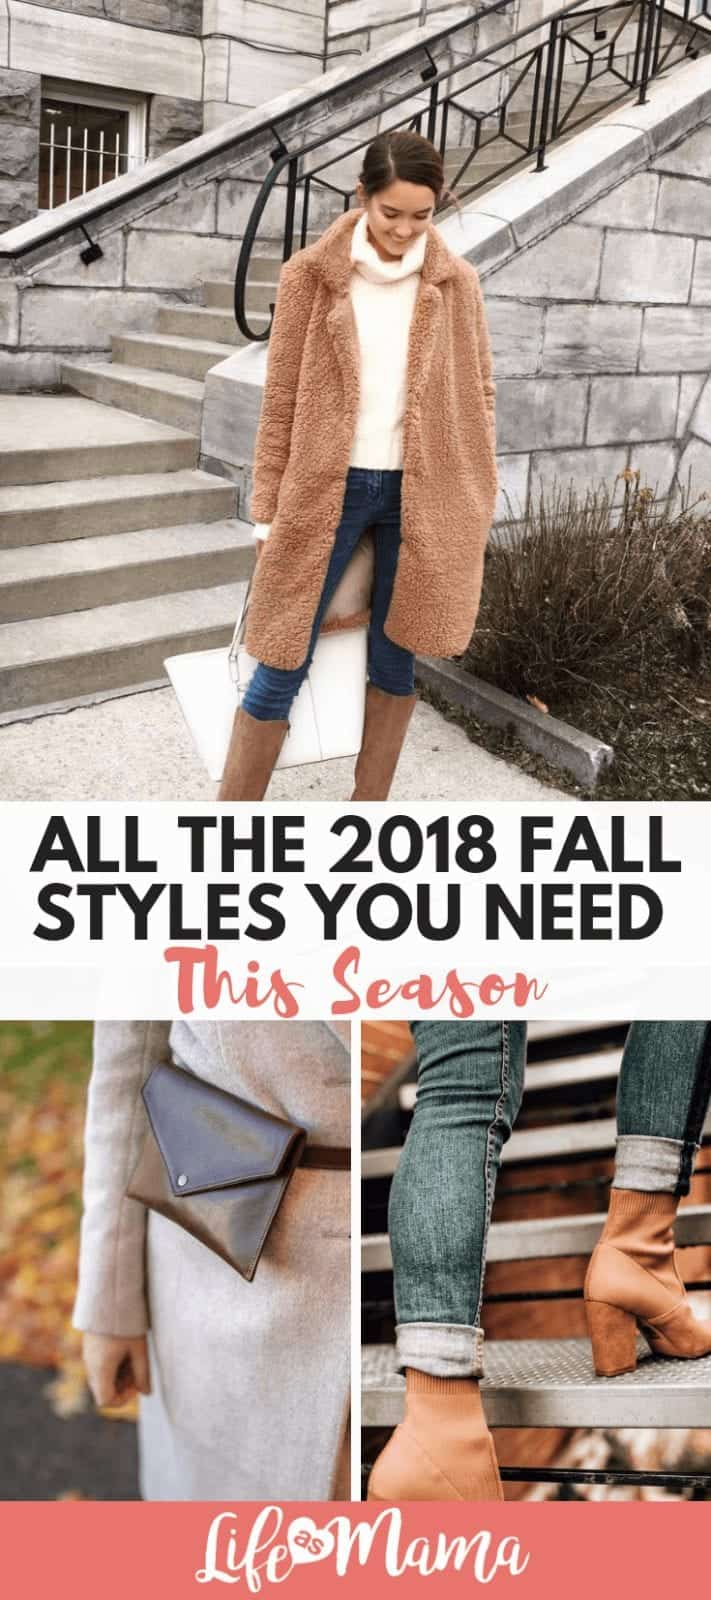 All the 2018 Fall Styles You Need This Season